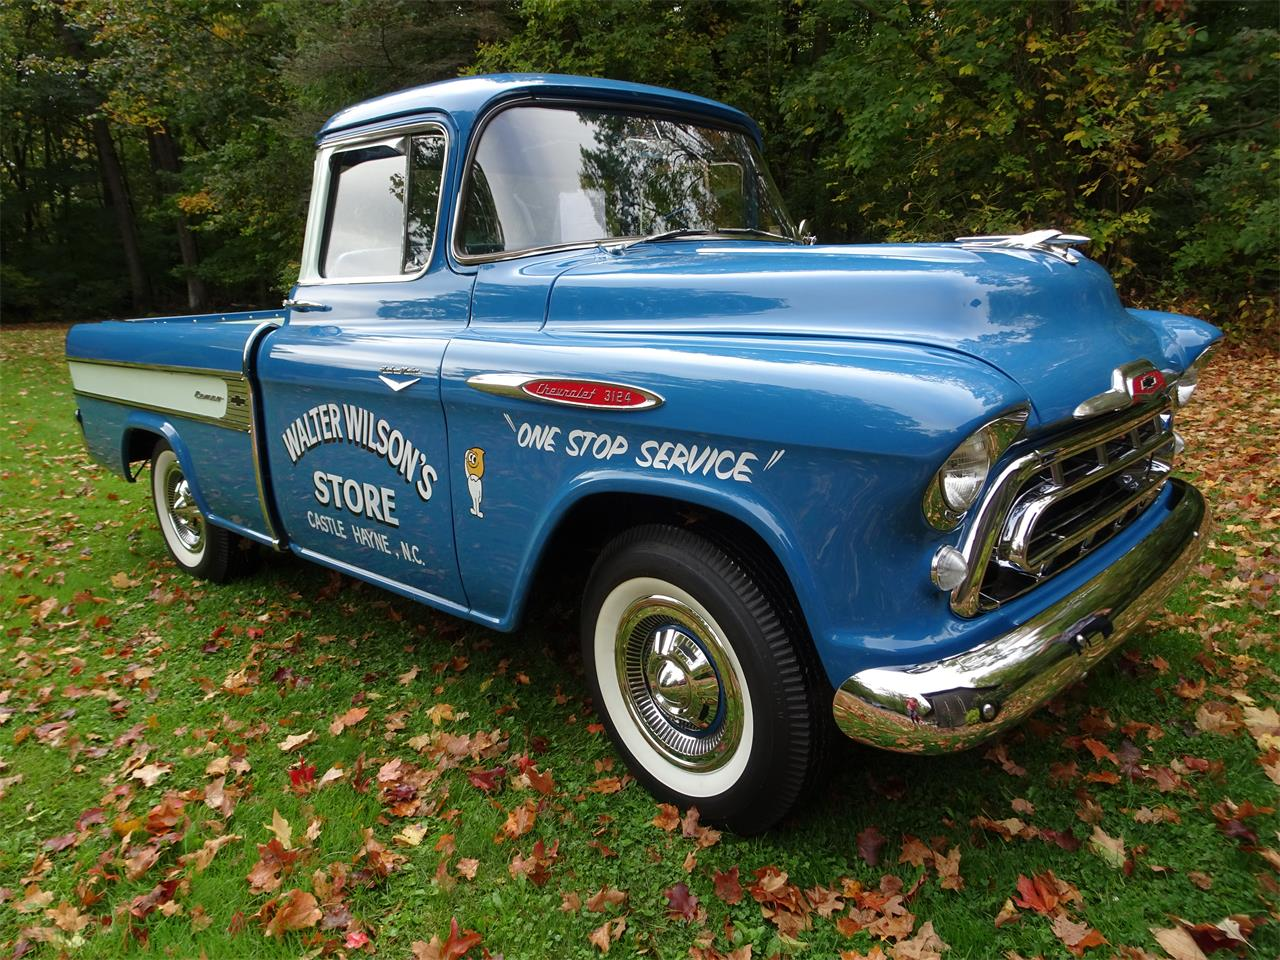 for sale 1957 chevrolet cameo in dodge center, minnesota cars - dodge center, mn at geebo